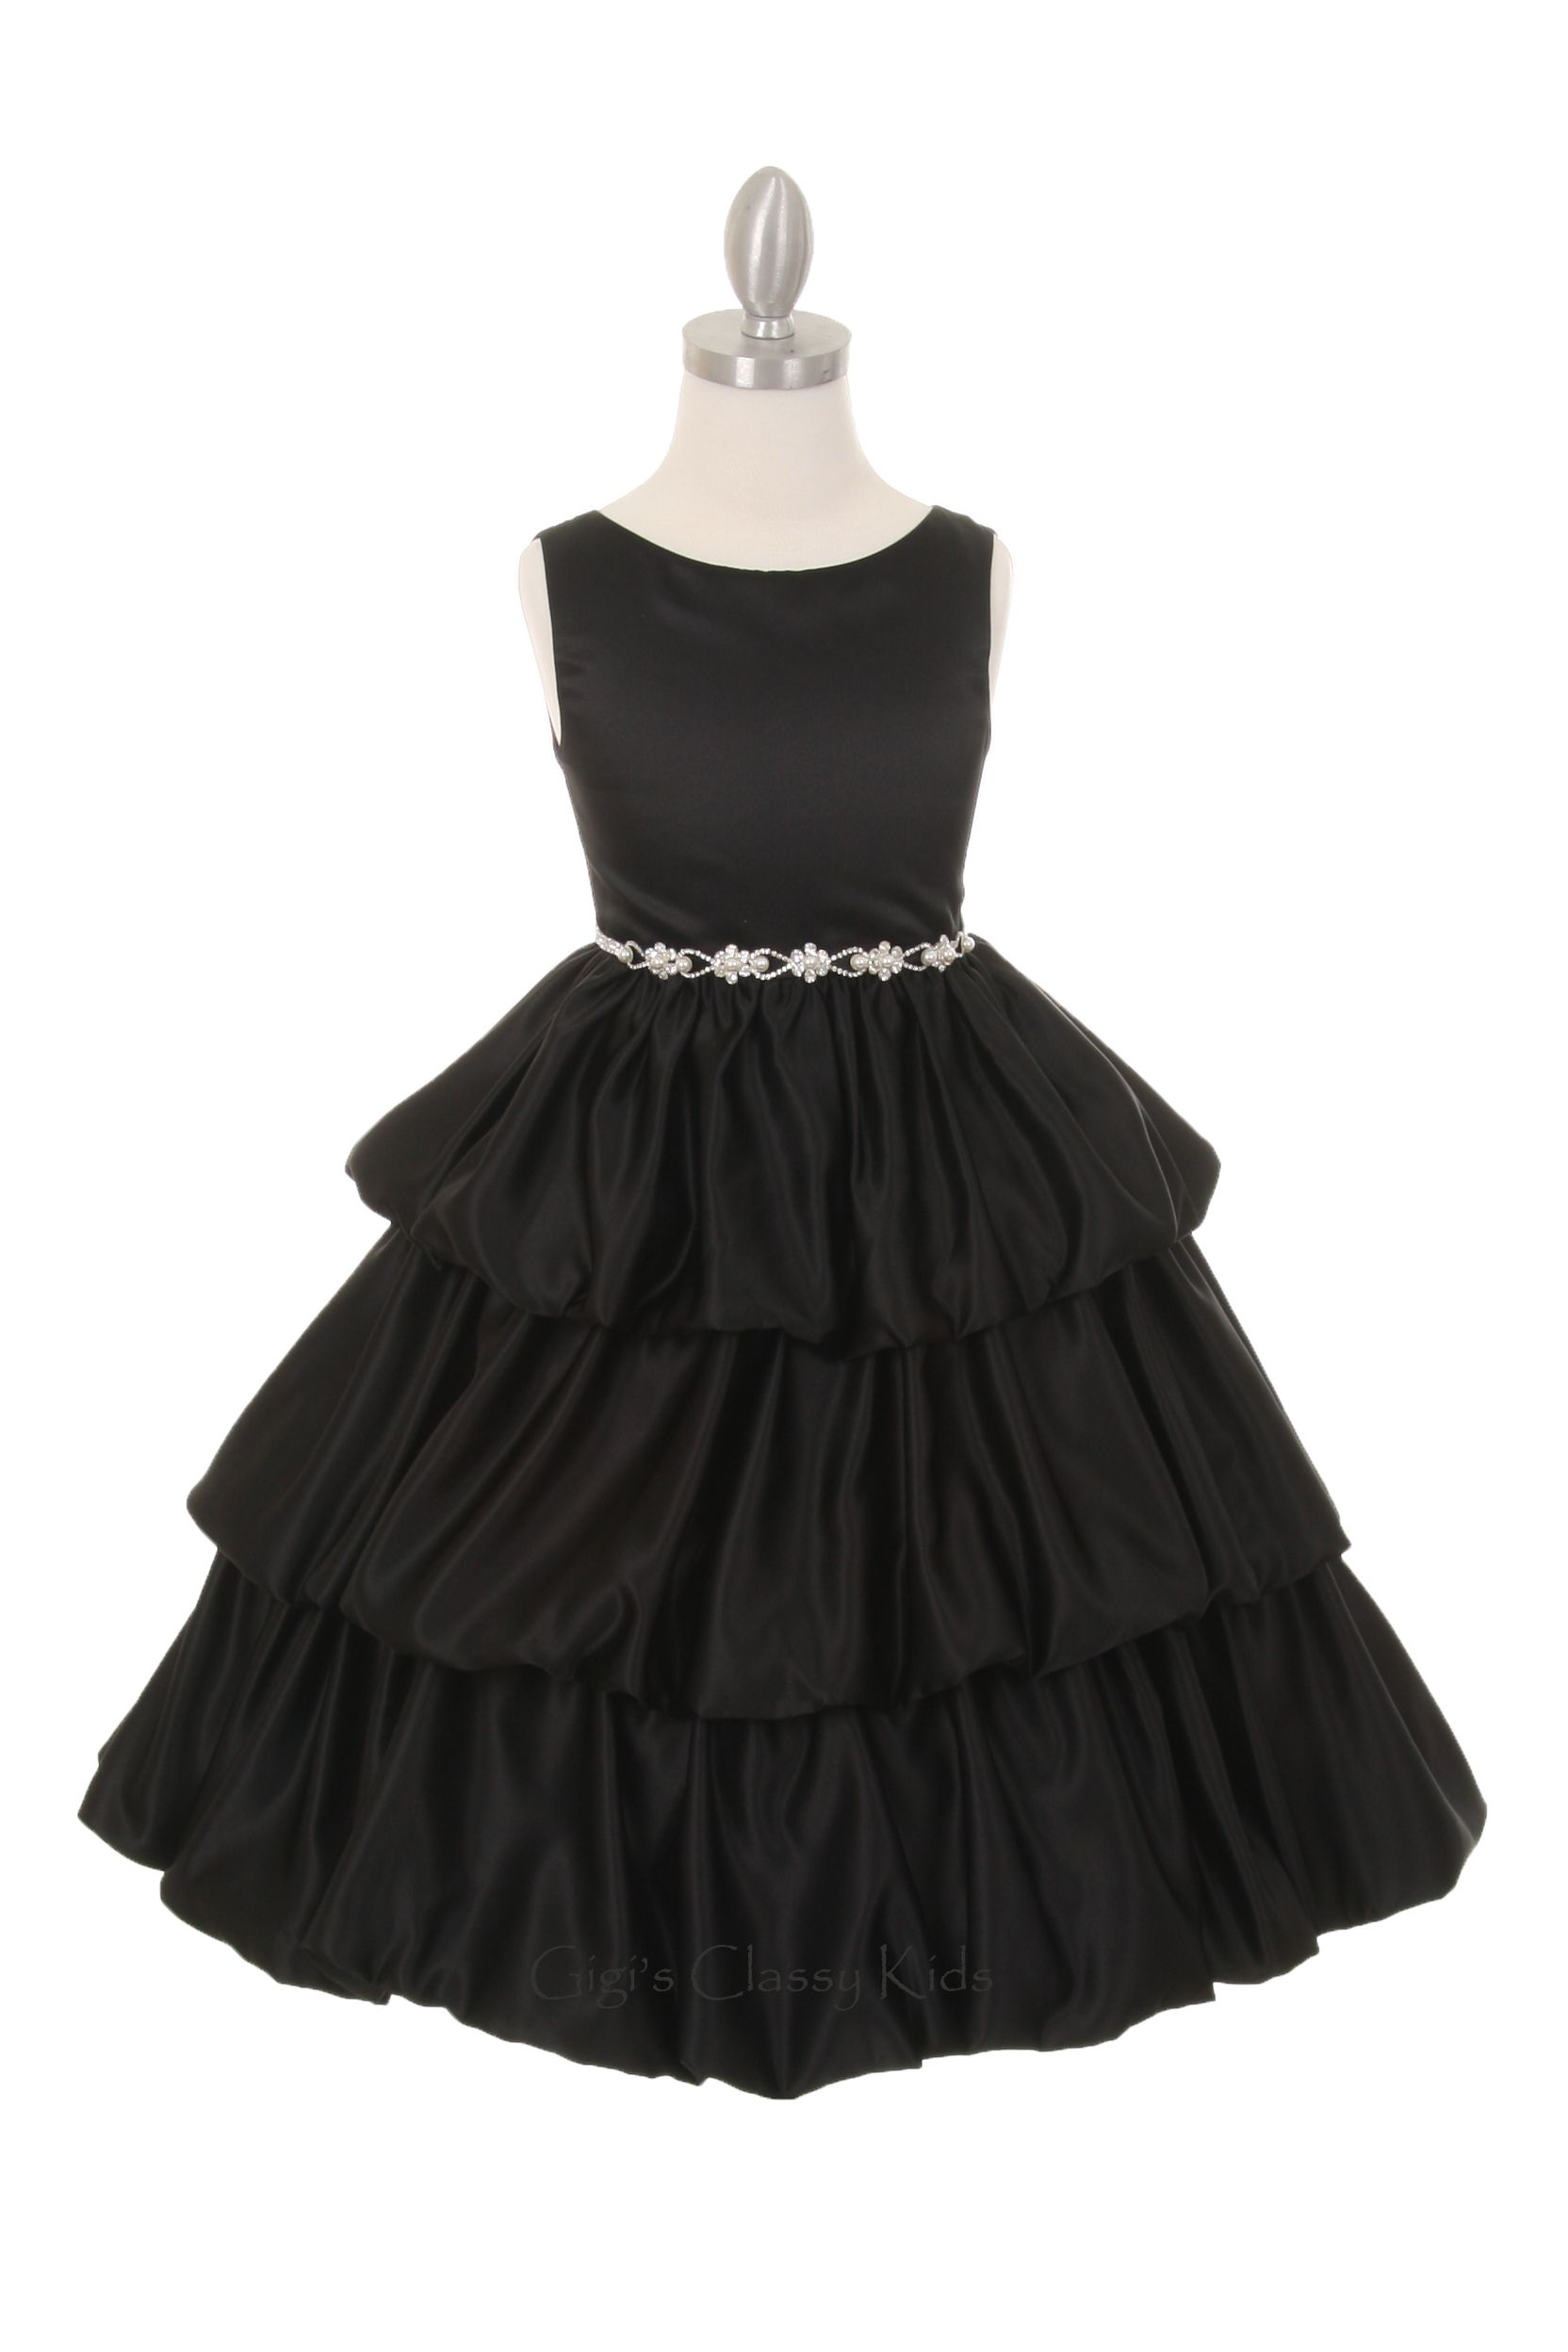 Classic Flower Girl Dull Satin Dress Available In Black Ivory